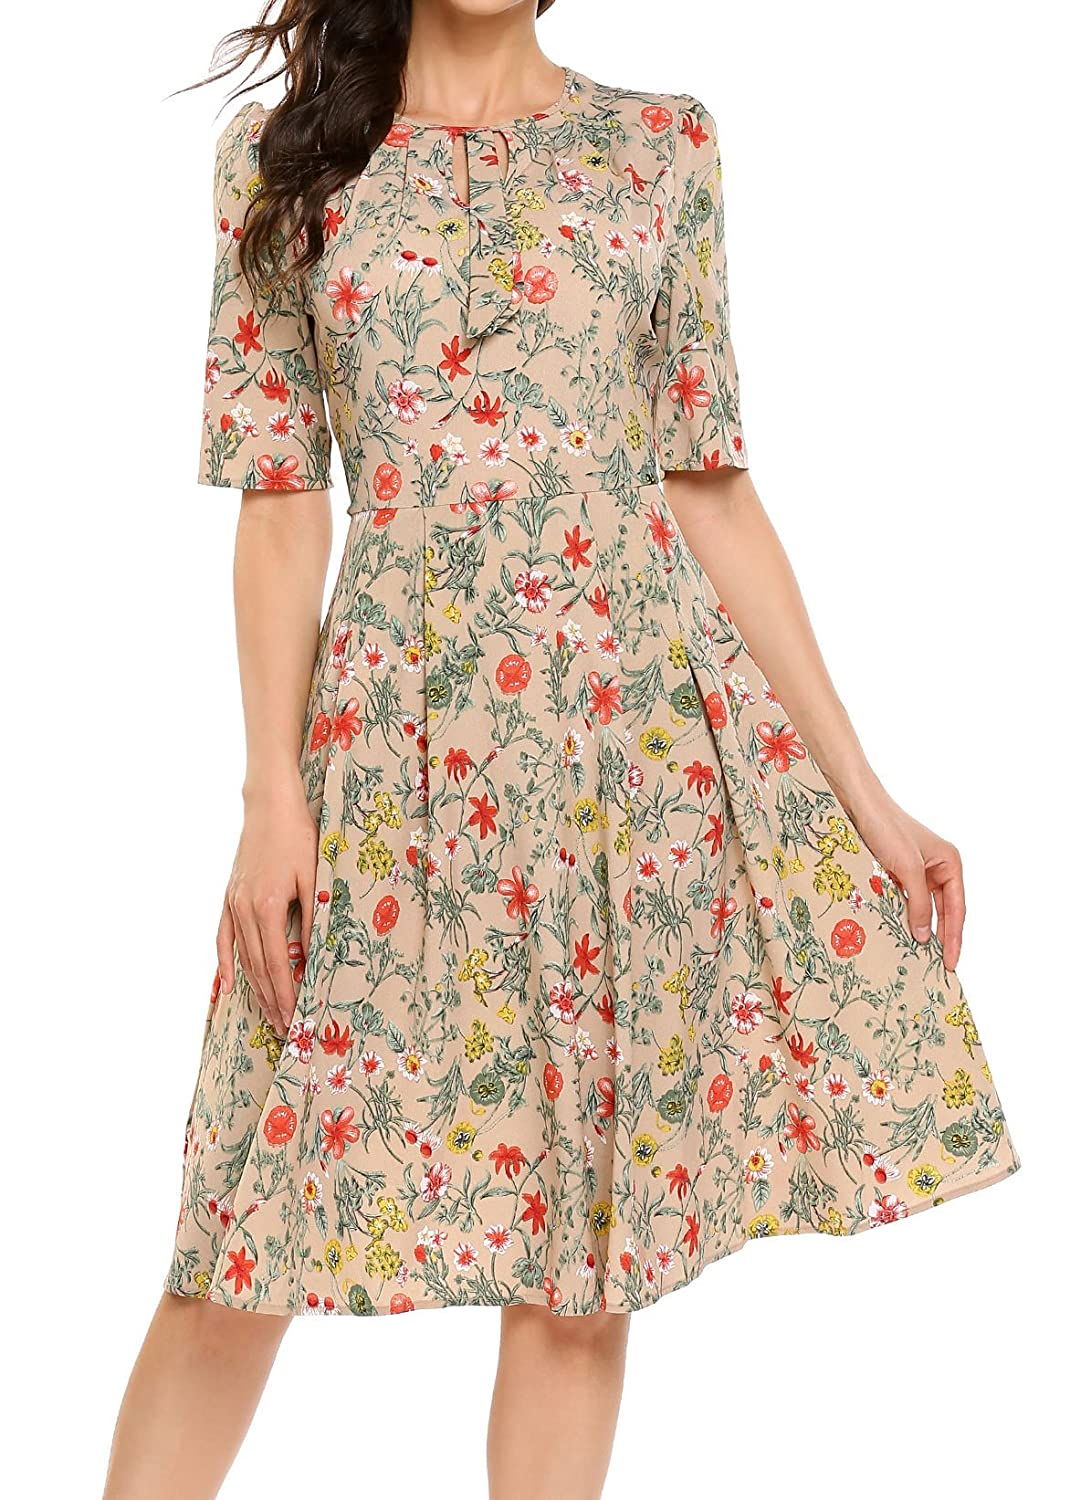 1940s Dresses | 40s Dress, Swing Dress Casual Short Sleeve Floral Printed Fit and Flare Party Dress ACEVOG Womens $30.79 AT vintagedancer.com